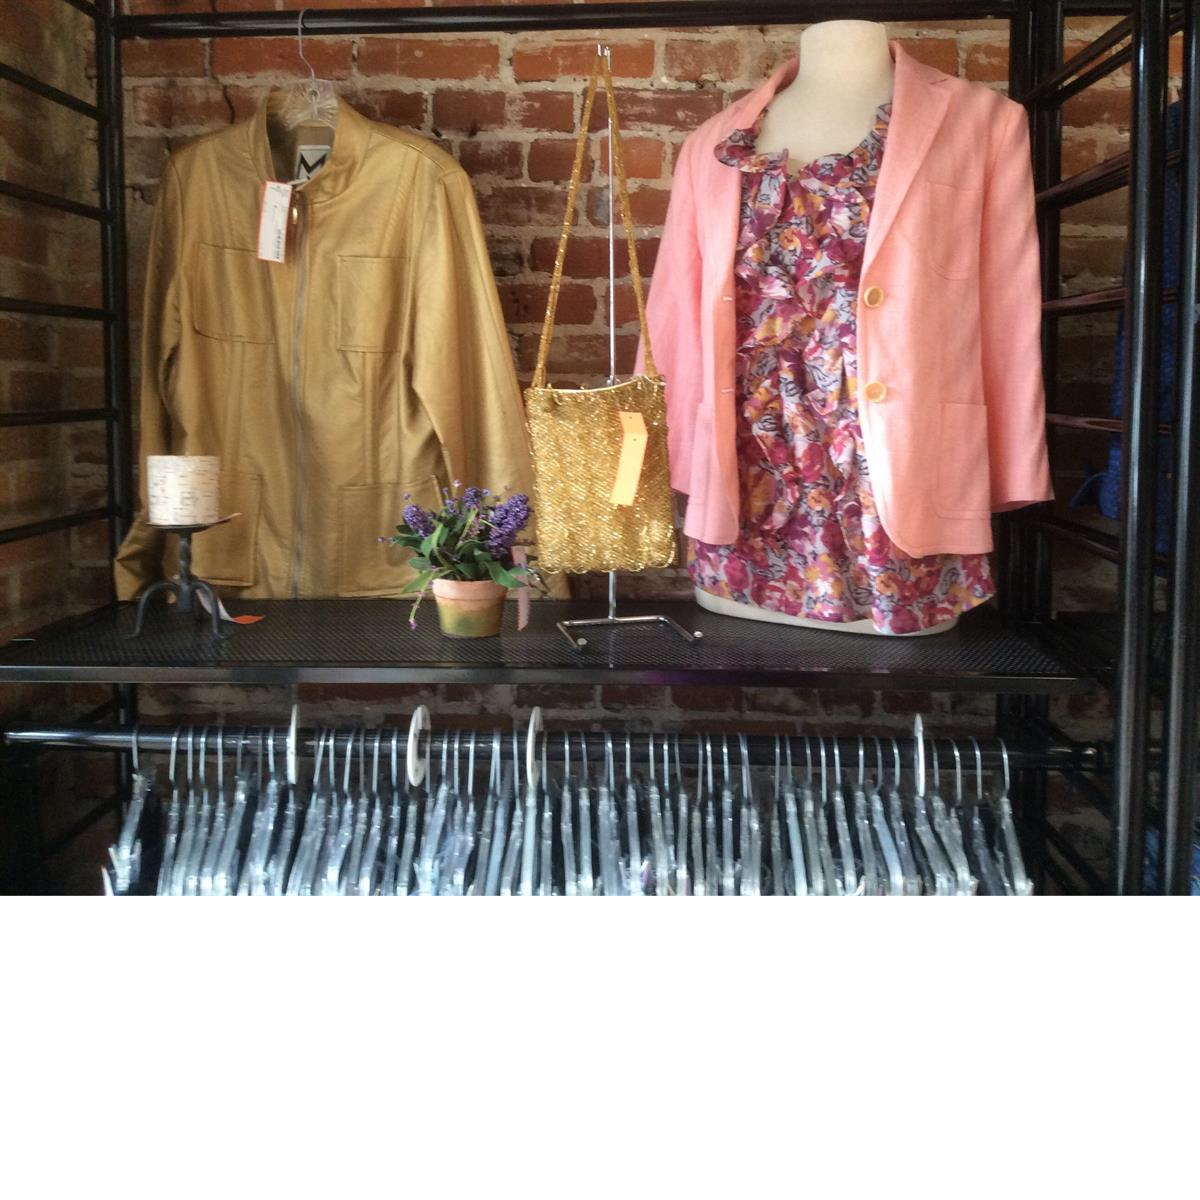 Consigned fashion items for all seasons and occasions. Consignment clothing, jewelry, shoes, and accessories